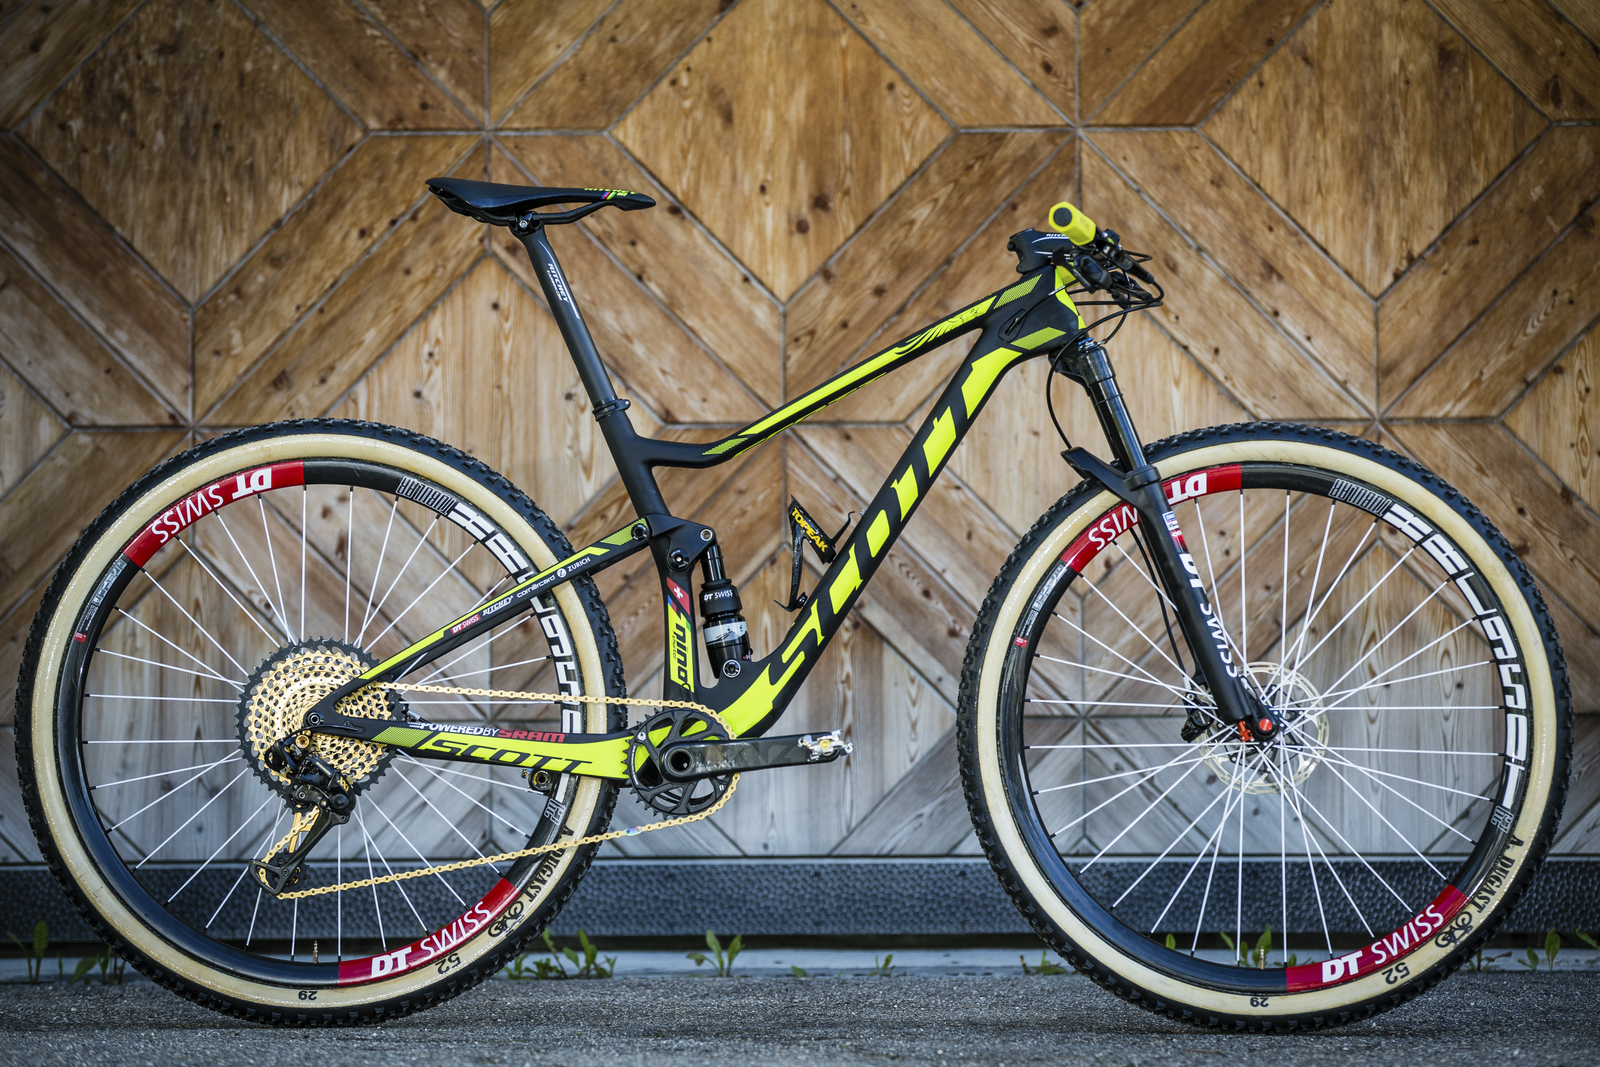 Spark RC 900 WC Nino Schurter_PL_Detail Image_2017_BIKE_SCOTT Sports_01